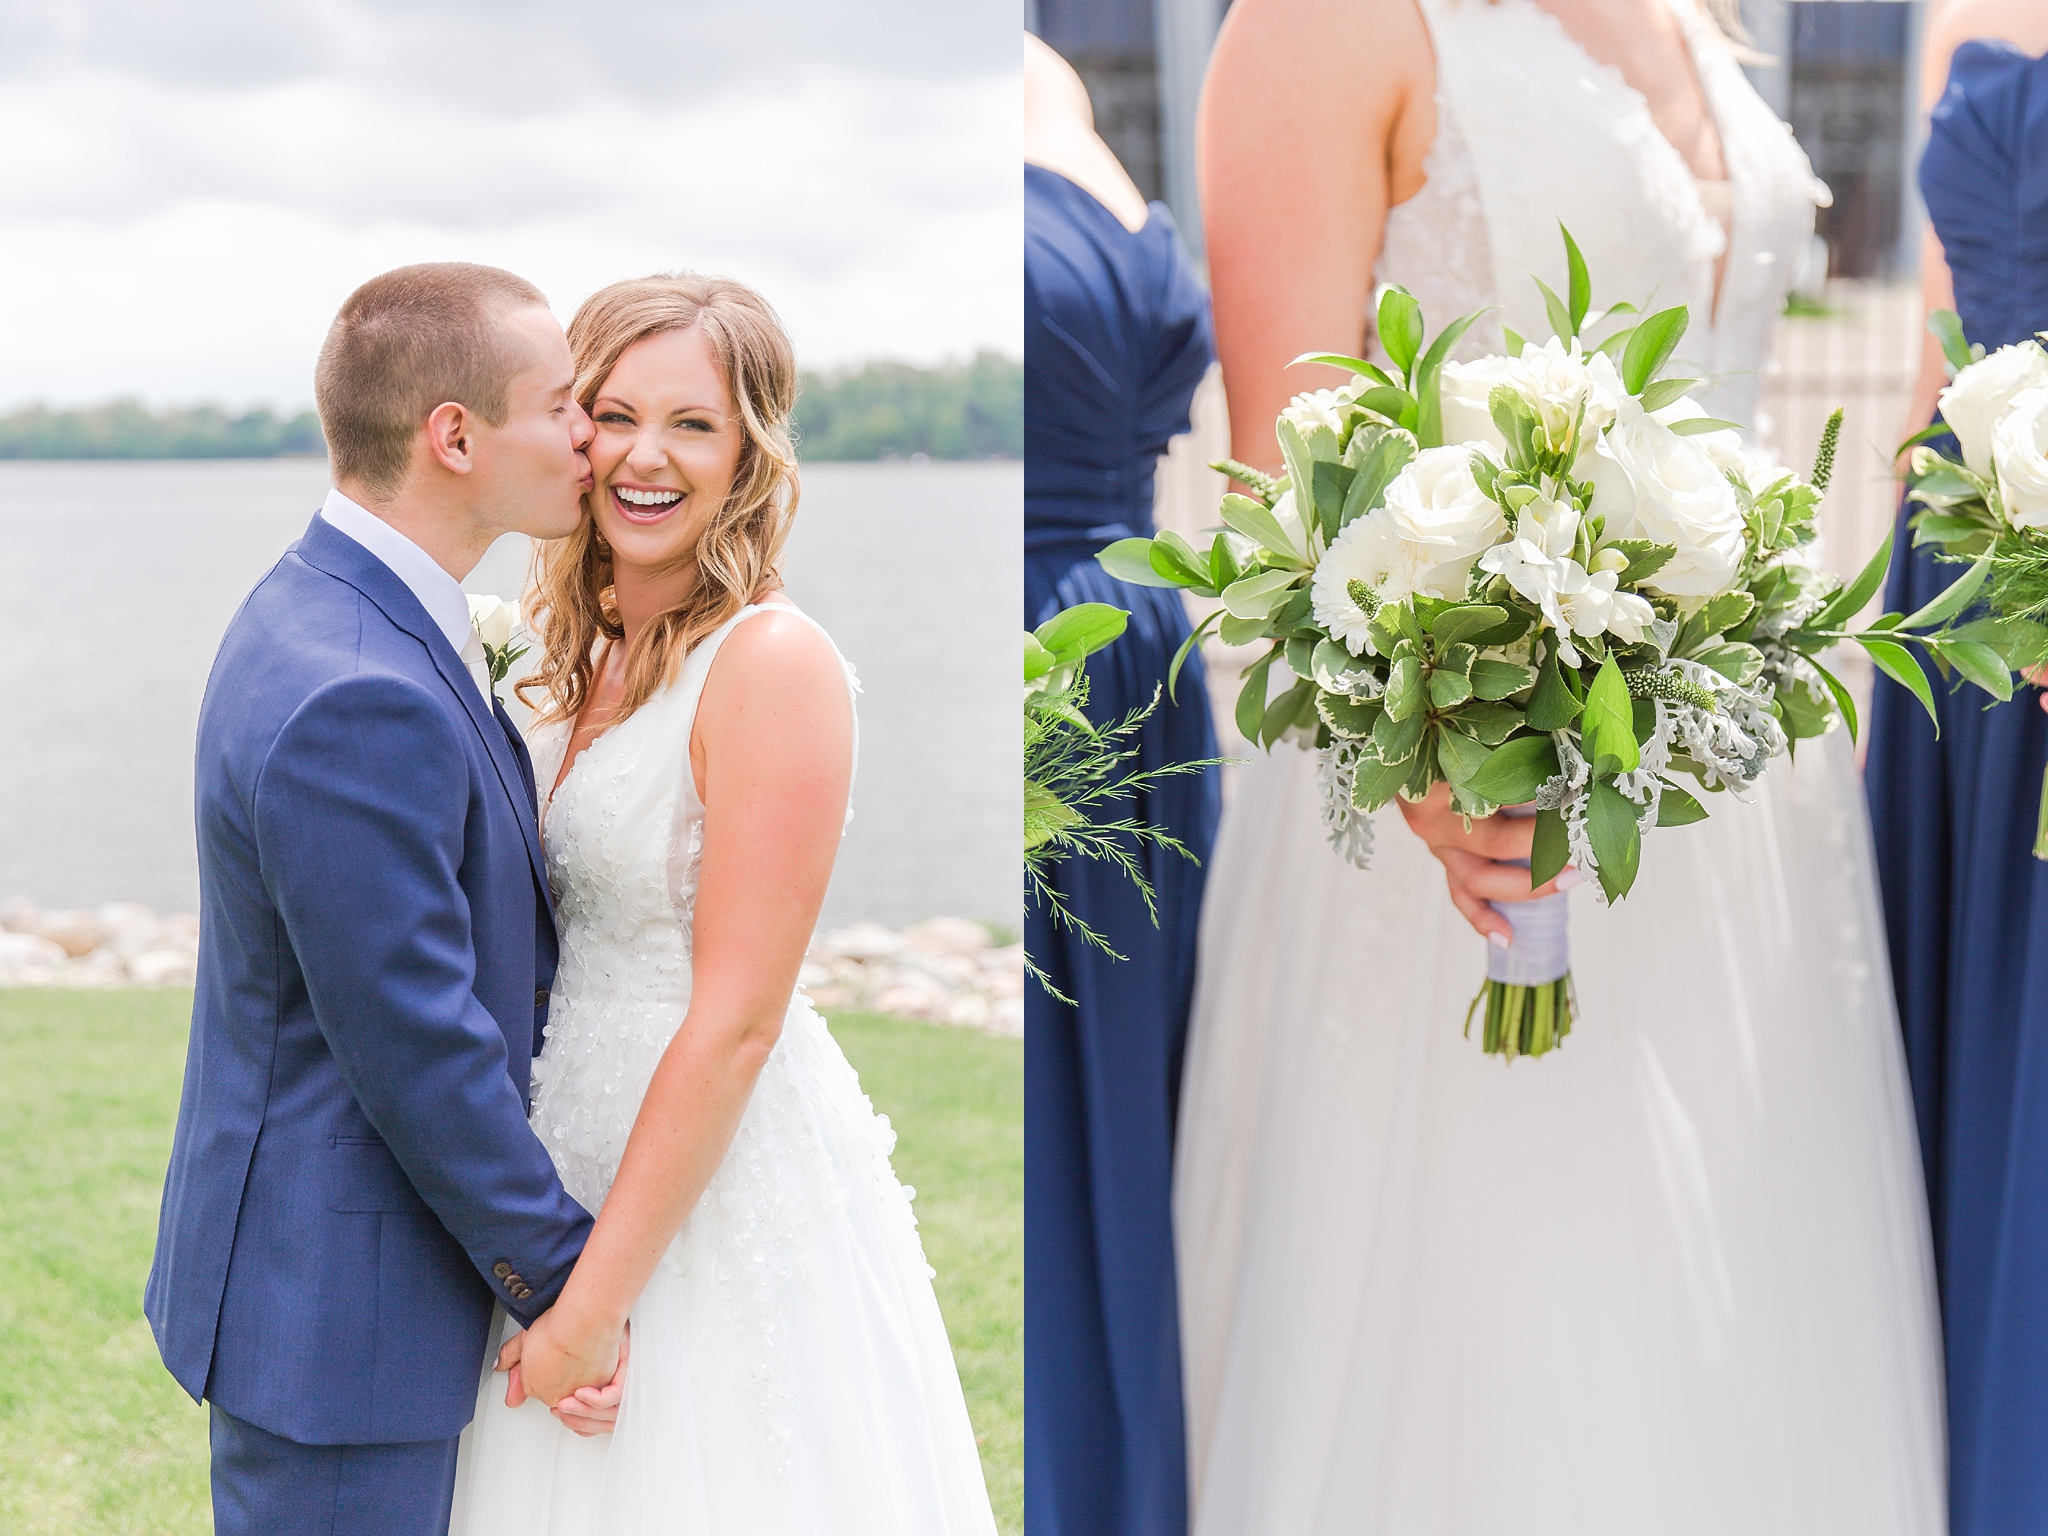 joyful-candid-laid-back-wedding-photos-in-ann-arbor-michigan-and-at-the-eagle-crest-golf-resort-by-courtney-carolyn-photography_0026.jpg